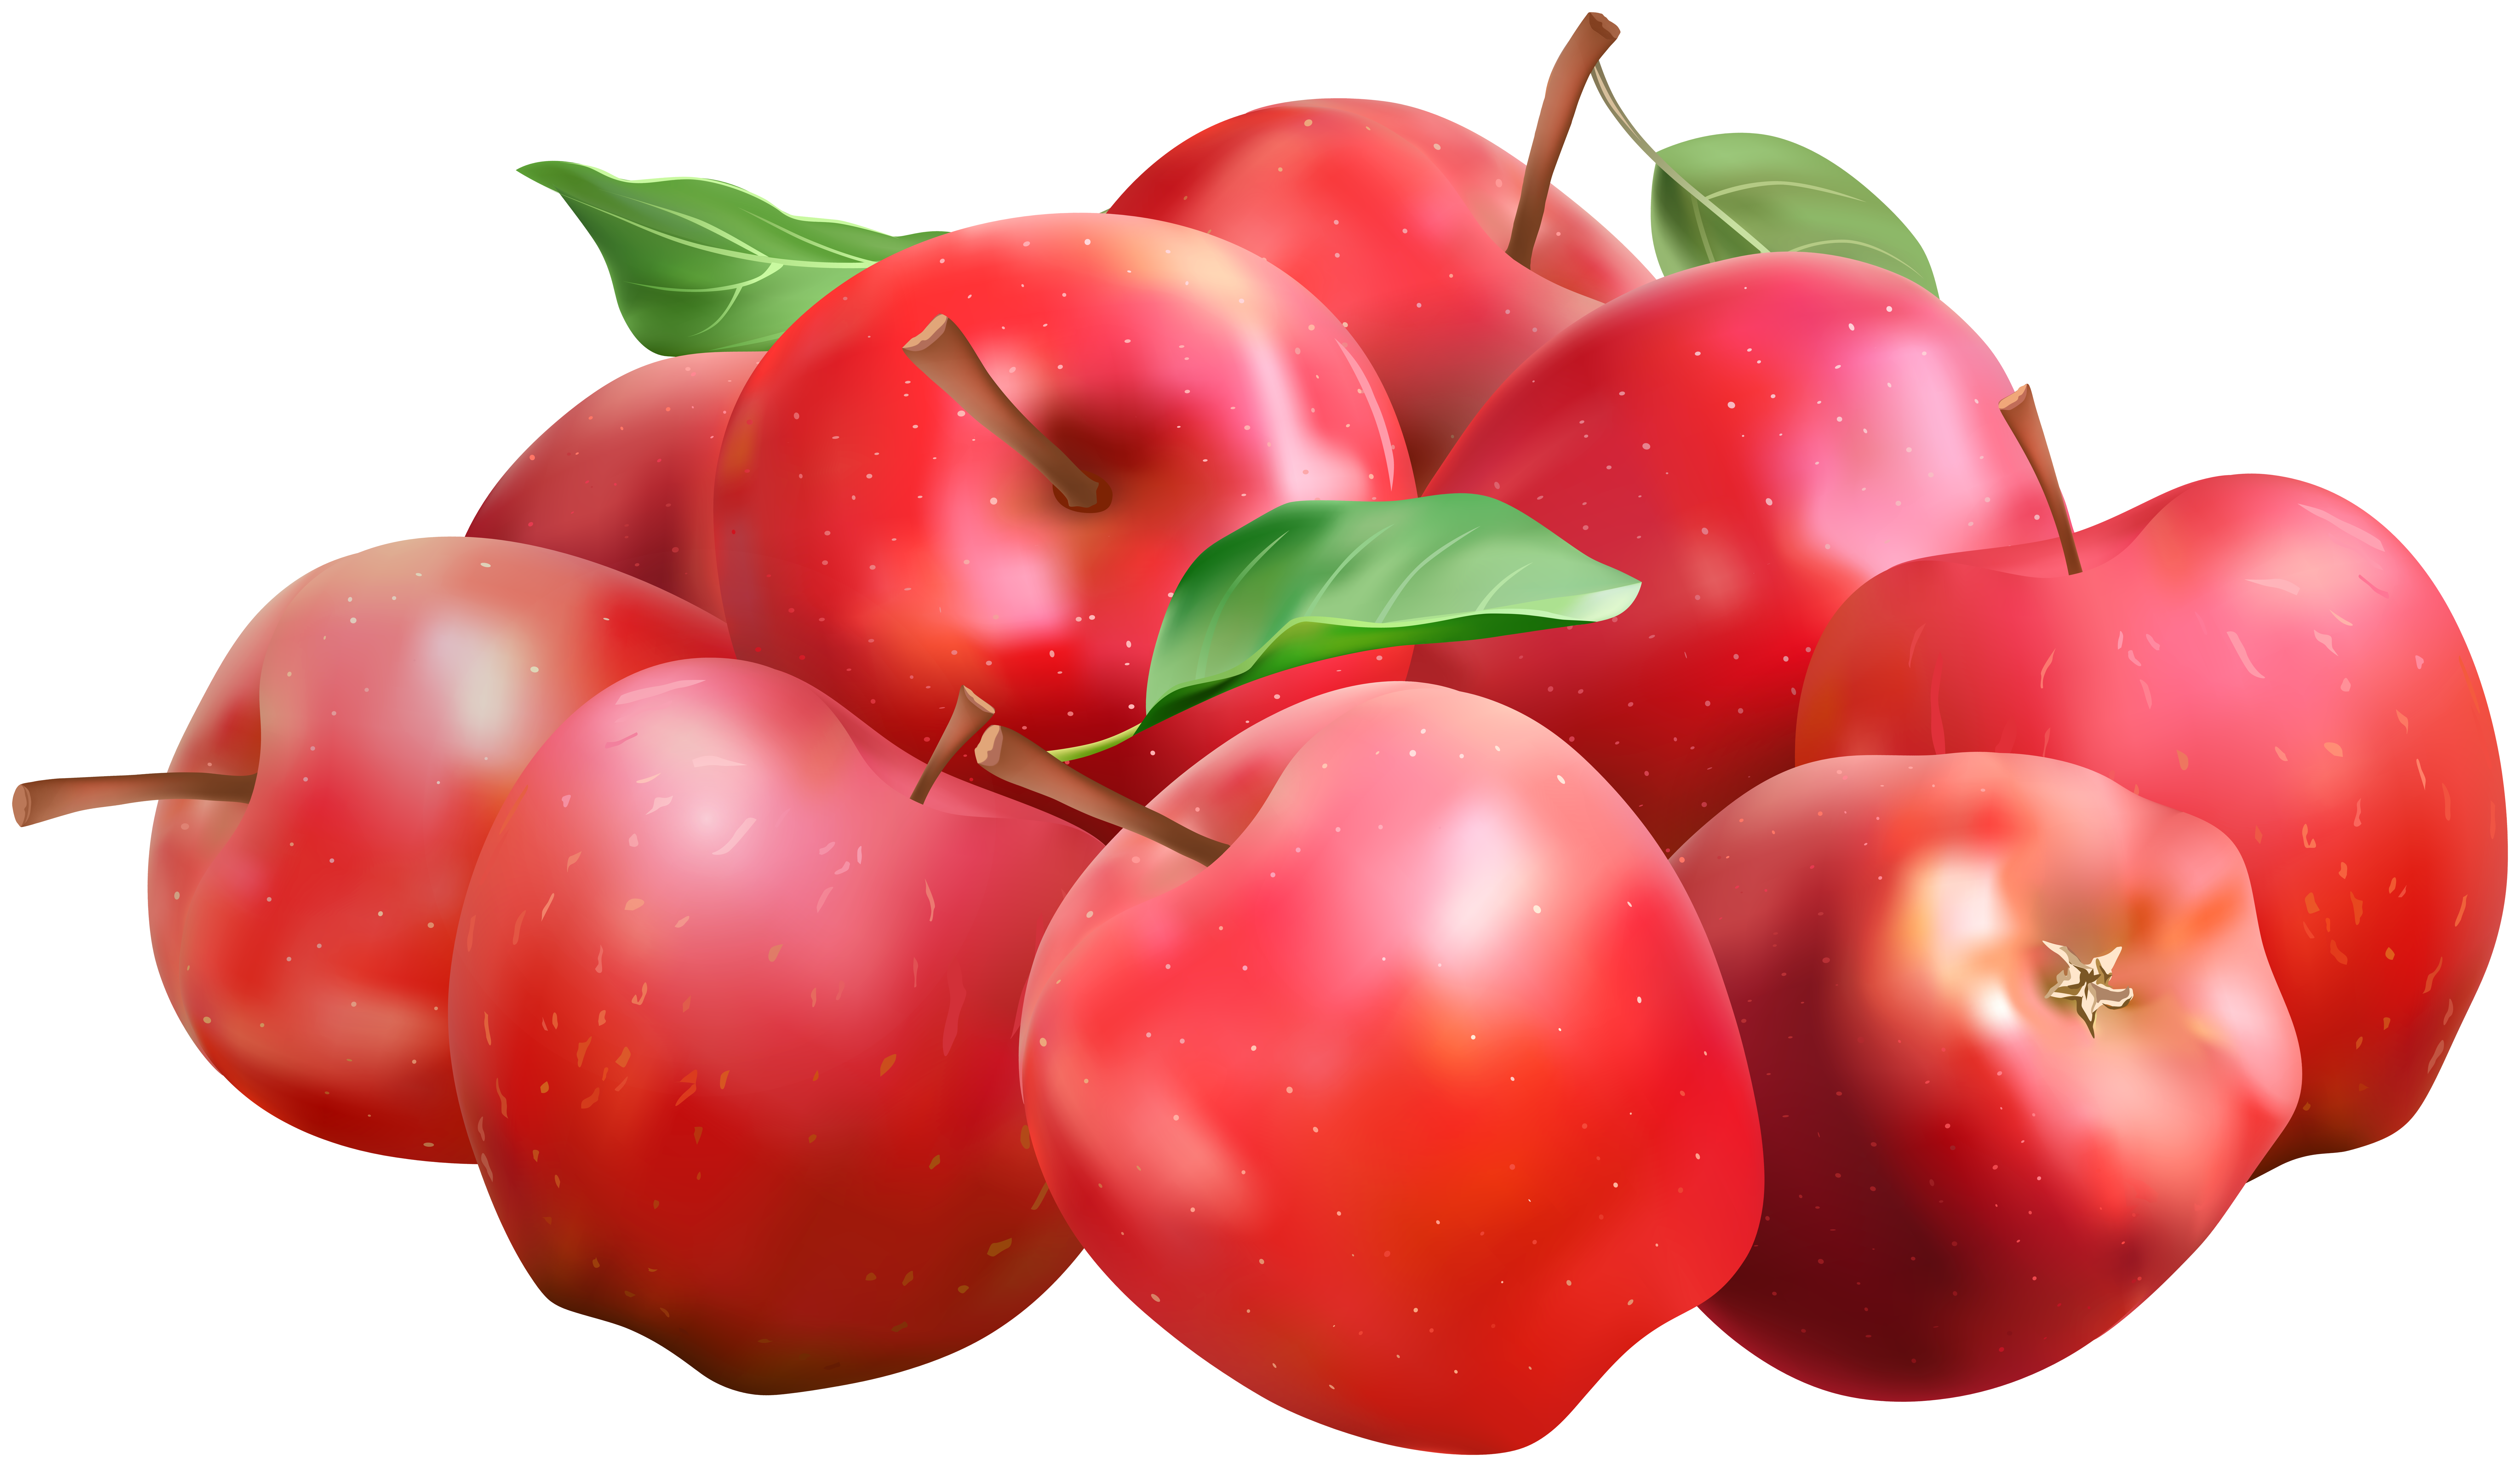 Red Apples PNG Clip Art Image.